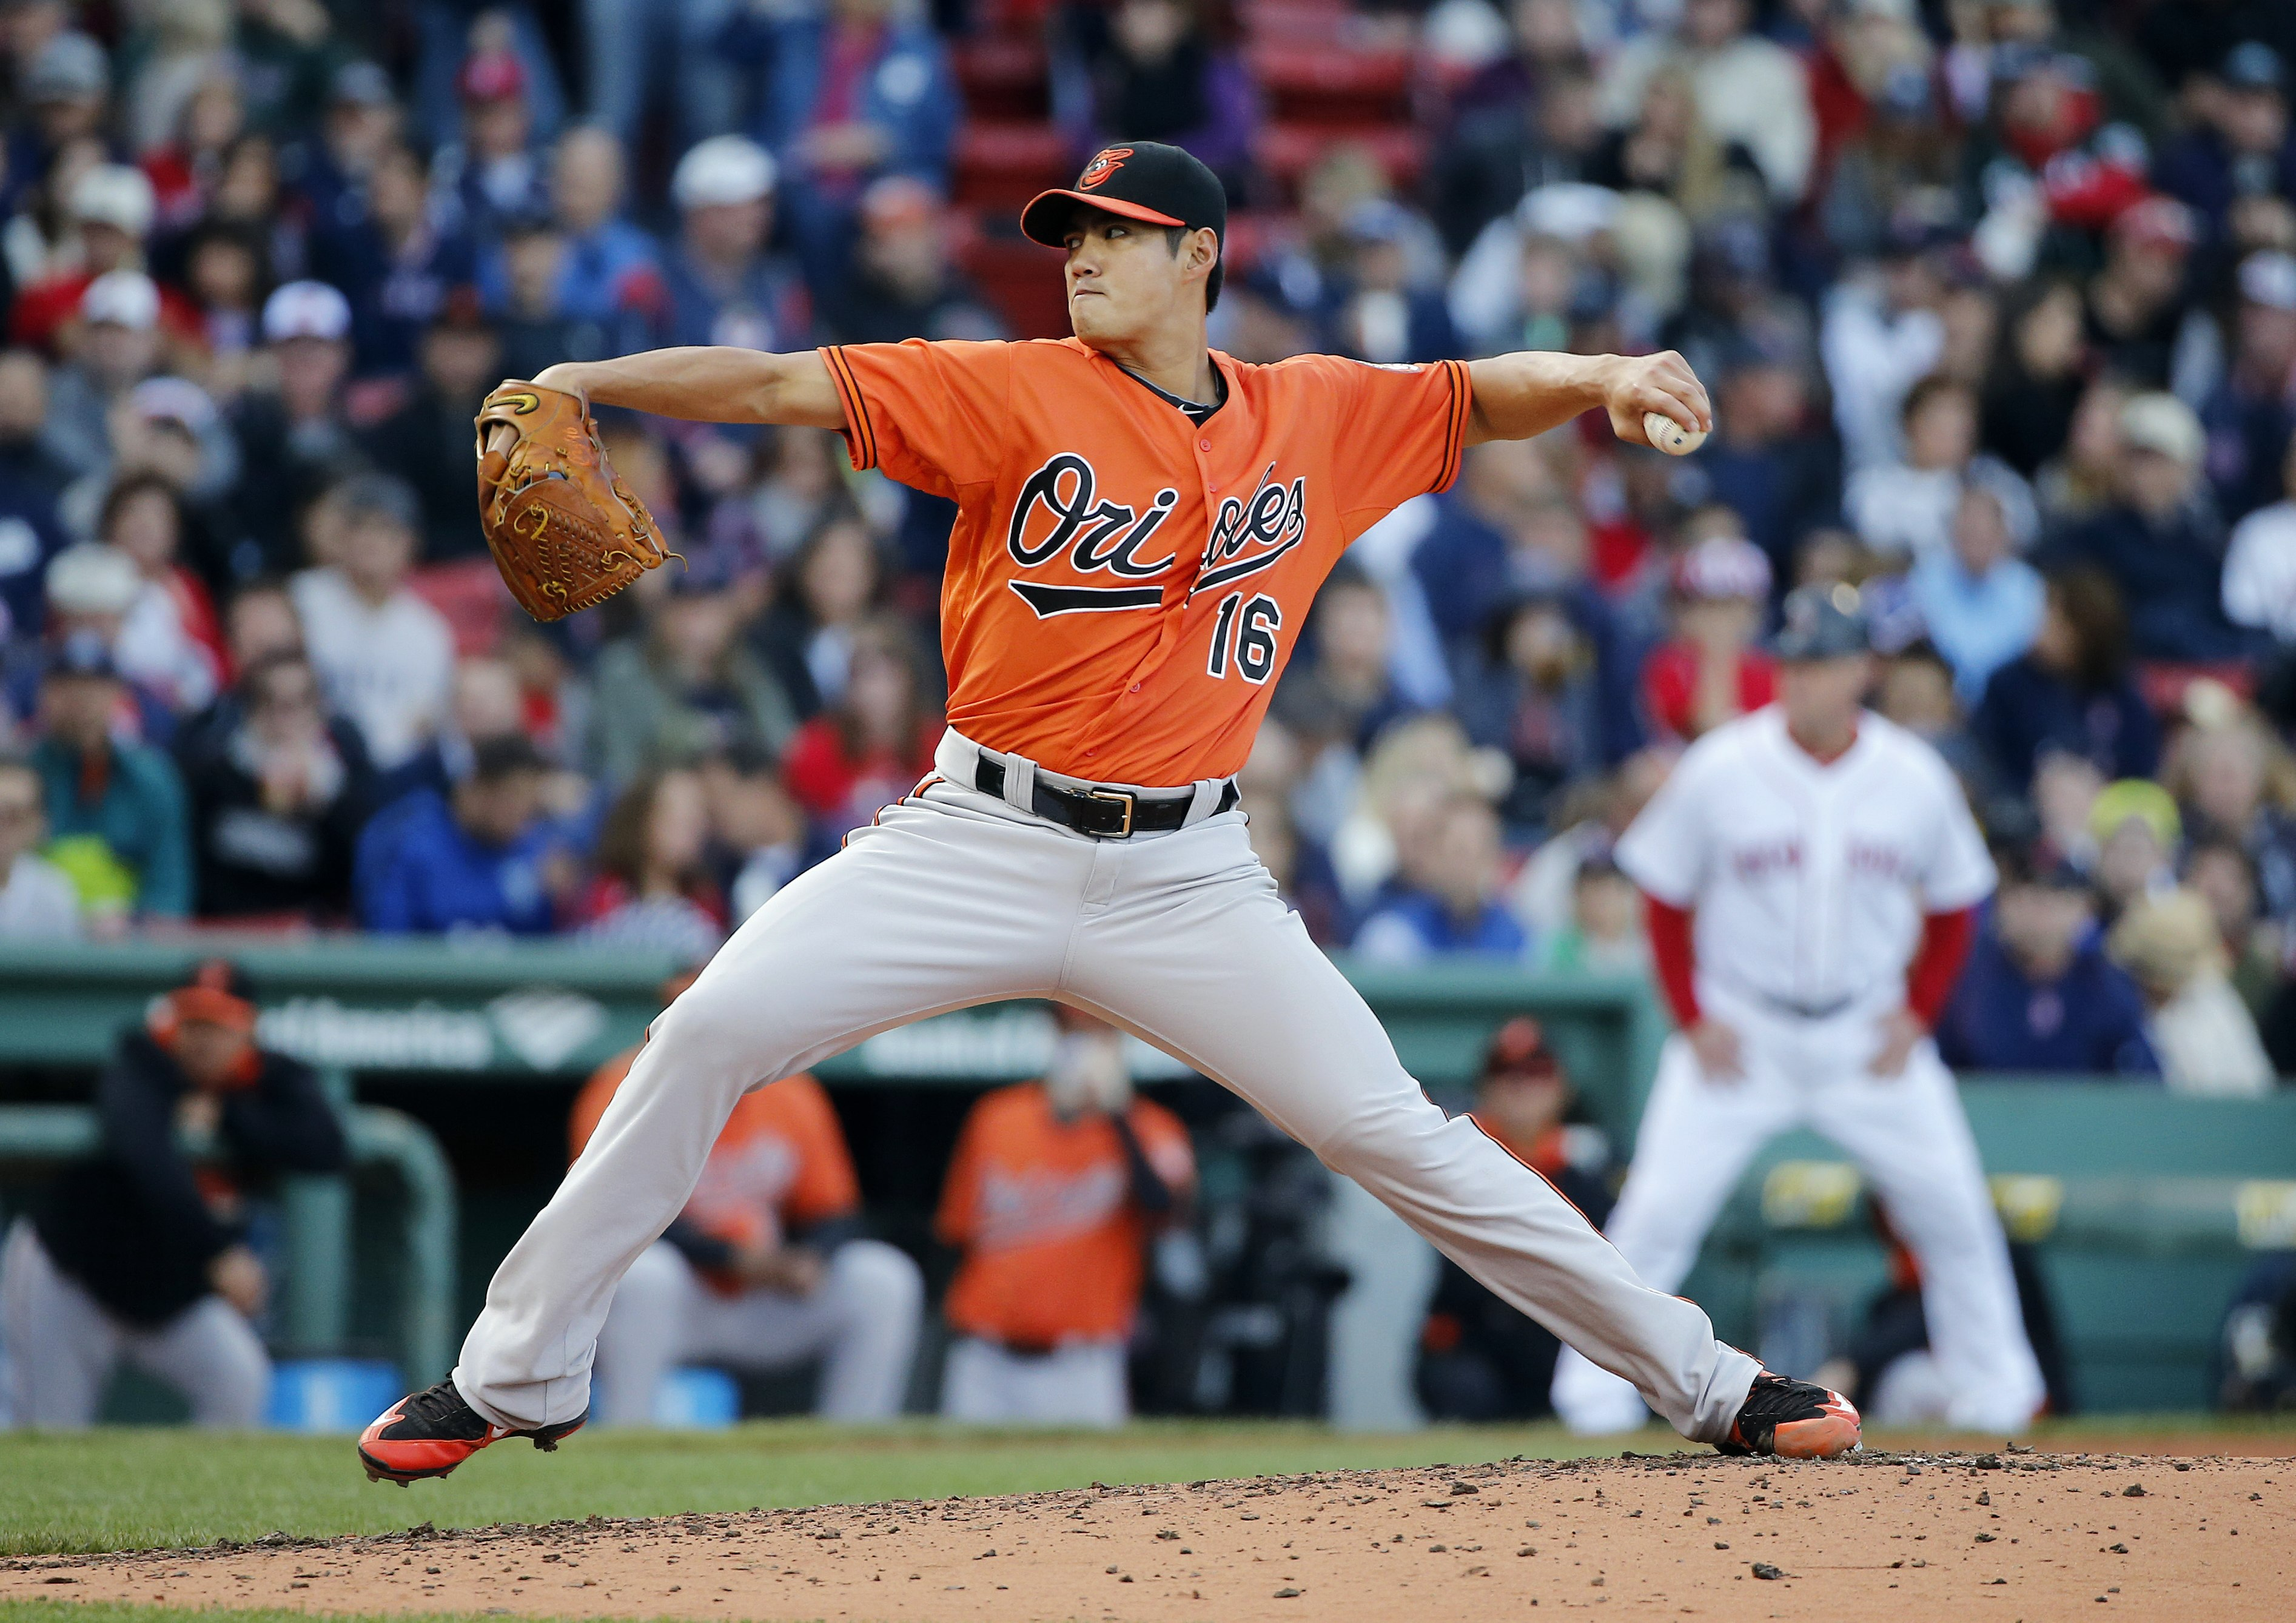 FILE - In this Sept. 26, 2015, file photo, Baltimore Orioles' Wei-Yin Chen pitches during the fourth inning of a baseball game against the Boston Red Sox, in Boston. Left-hander Wei-Yin Chen has finalized an $80 million, five-year contract with the Miami